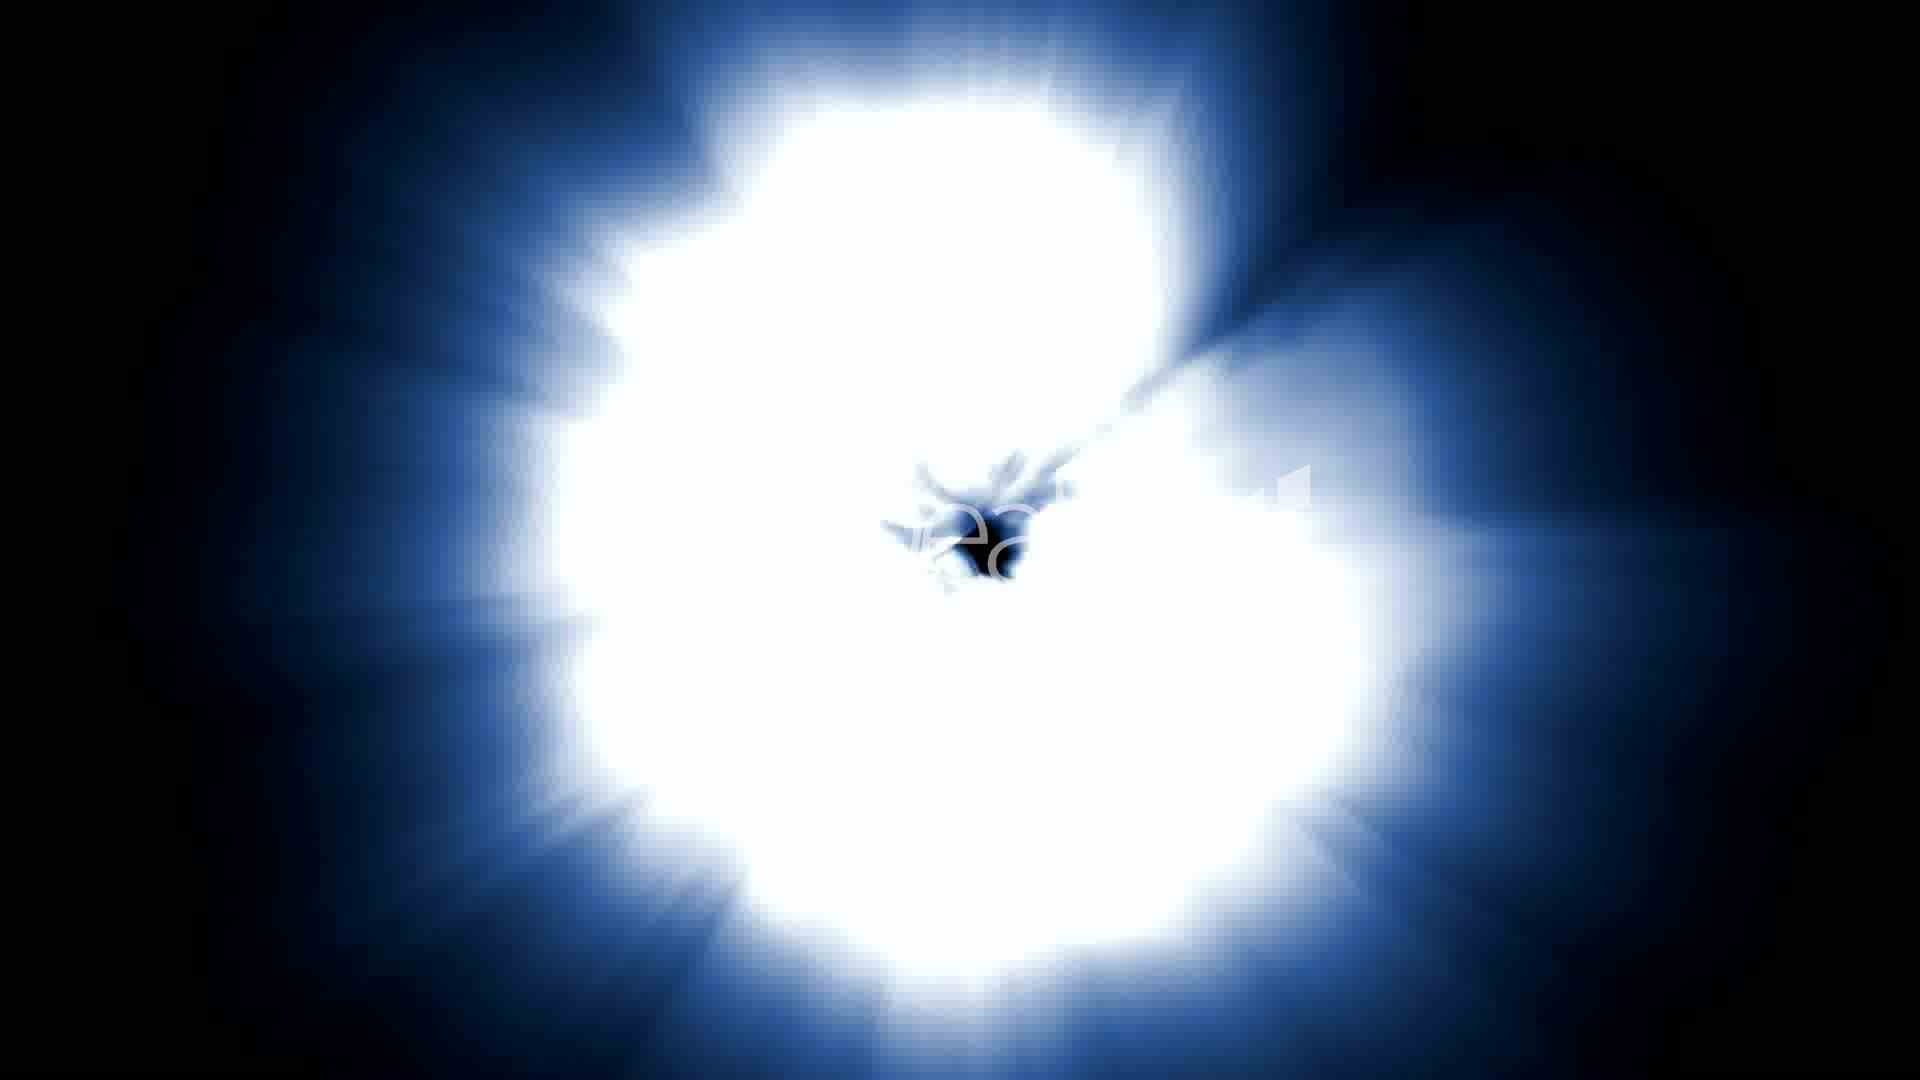 Star Explosion Dazzling Light Generated By Nuclear